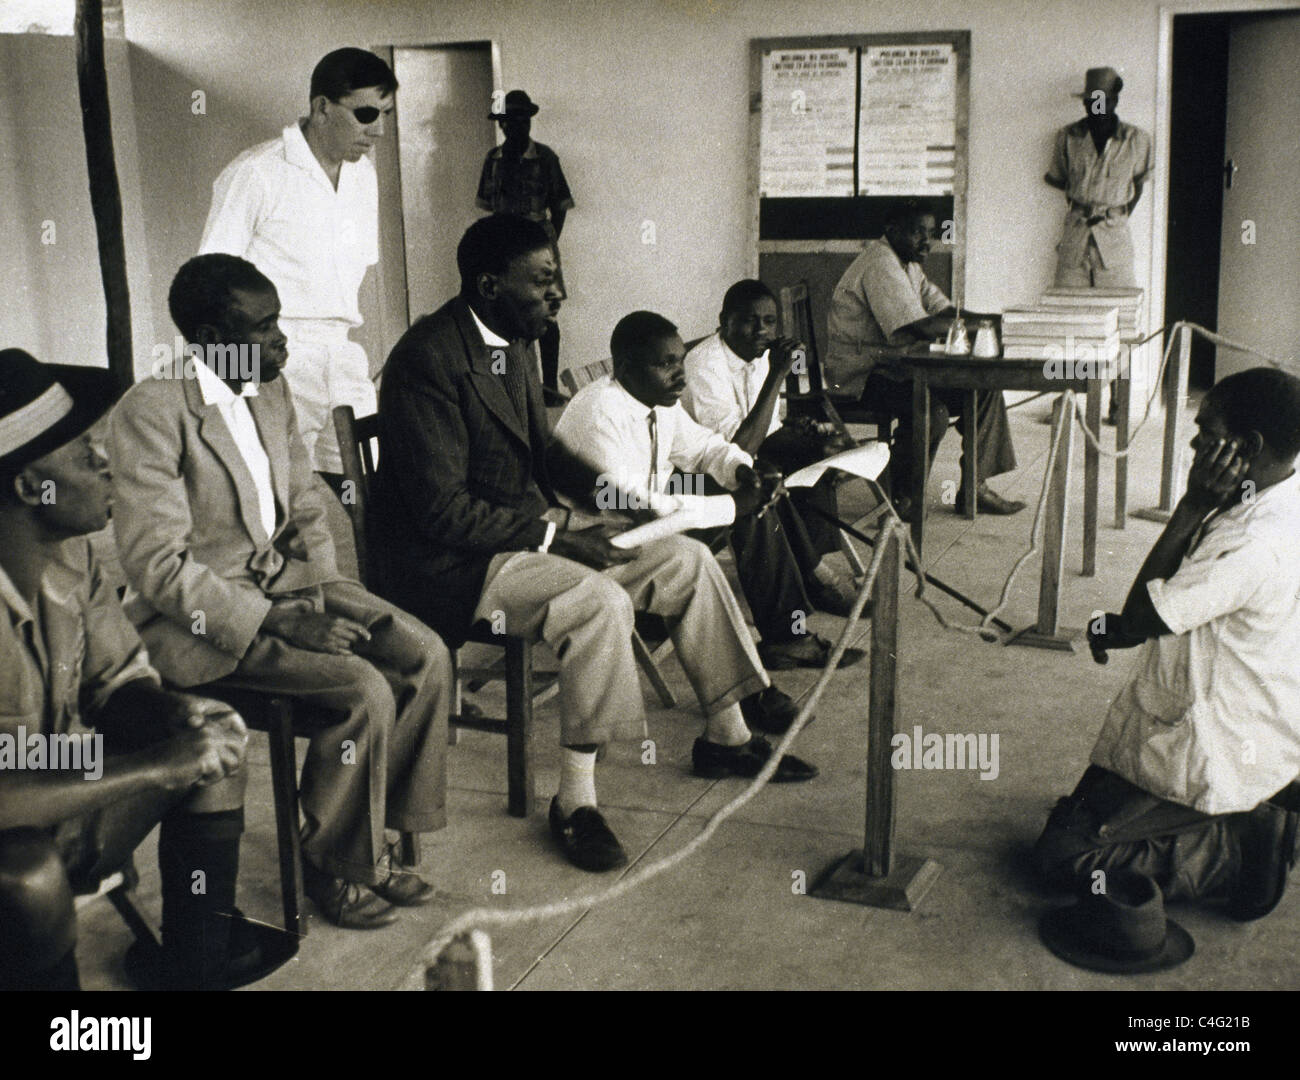 Elections in Northern Rhodesia, 1963. - Stock Image